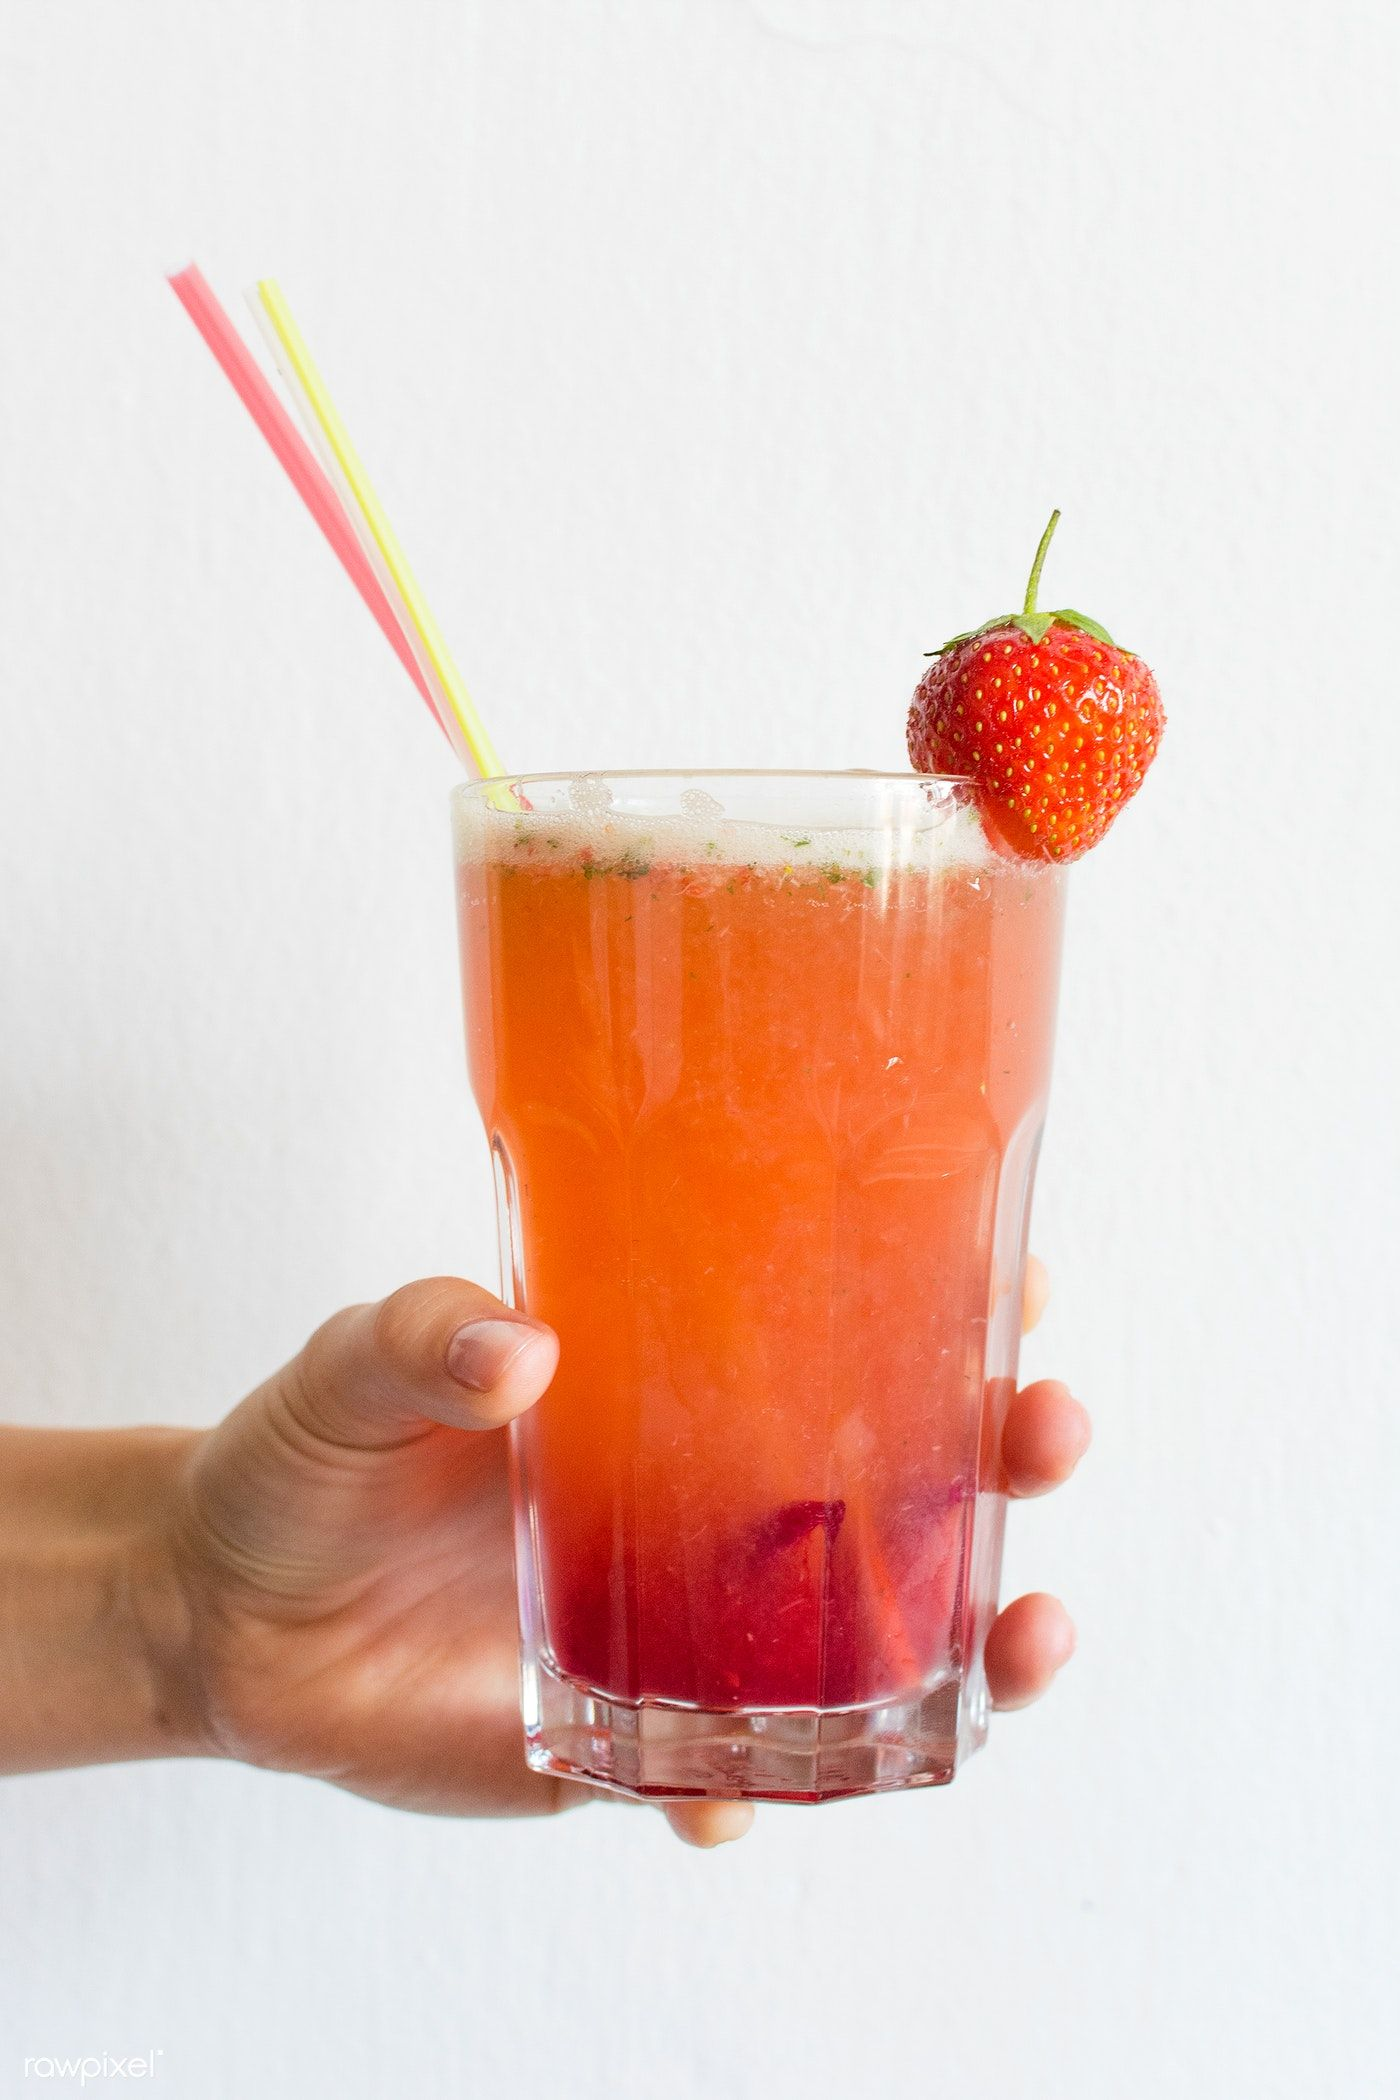 Homemade strawberry lemonade free image by